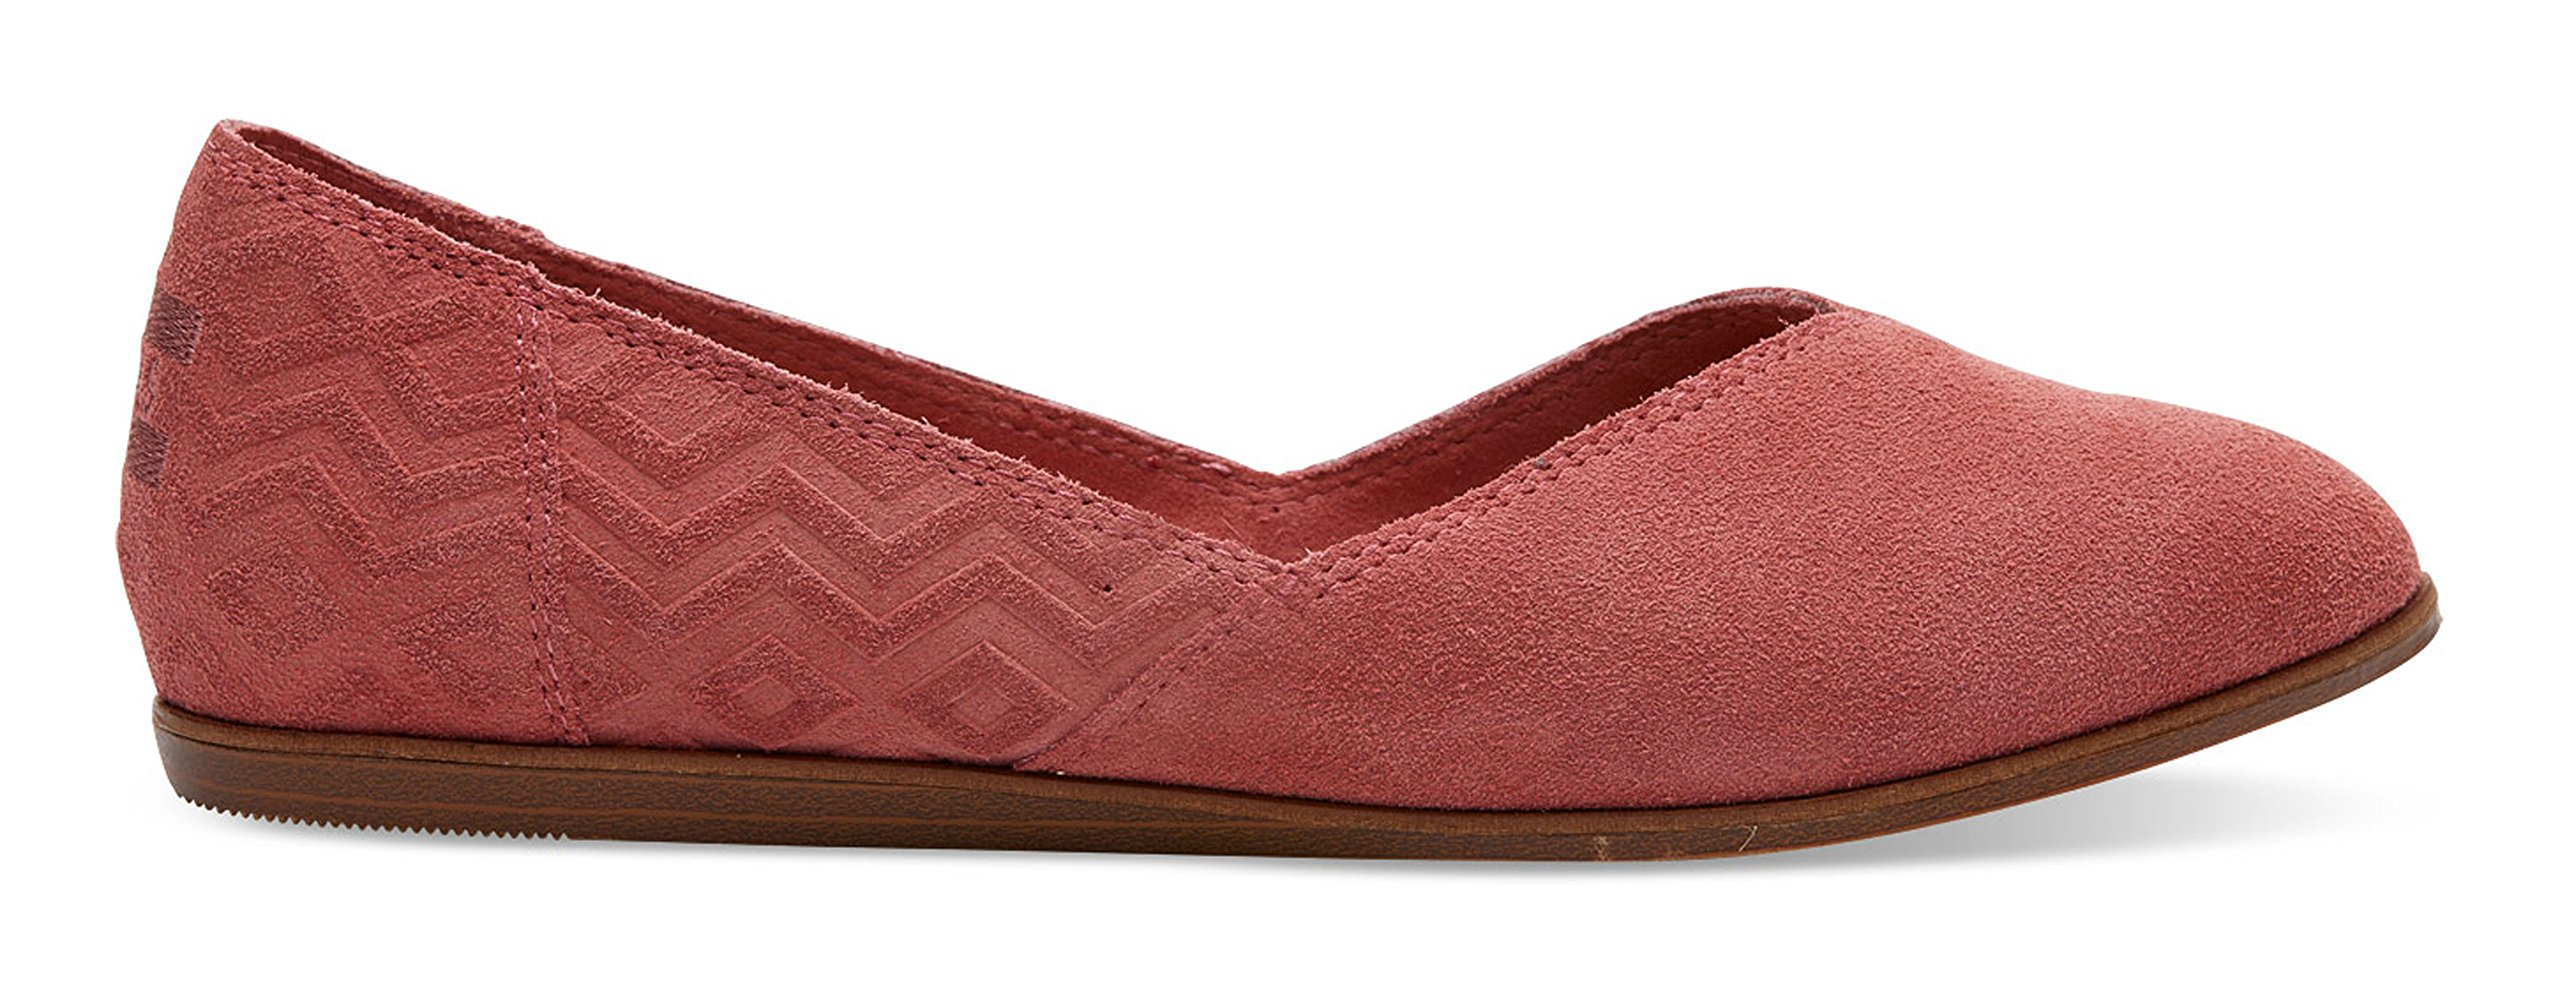 Toms Jutti Flats Faded Rose Suede Diamond Embossed 10010909 Womens 10